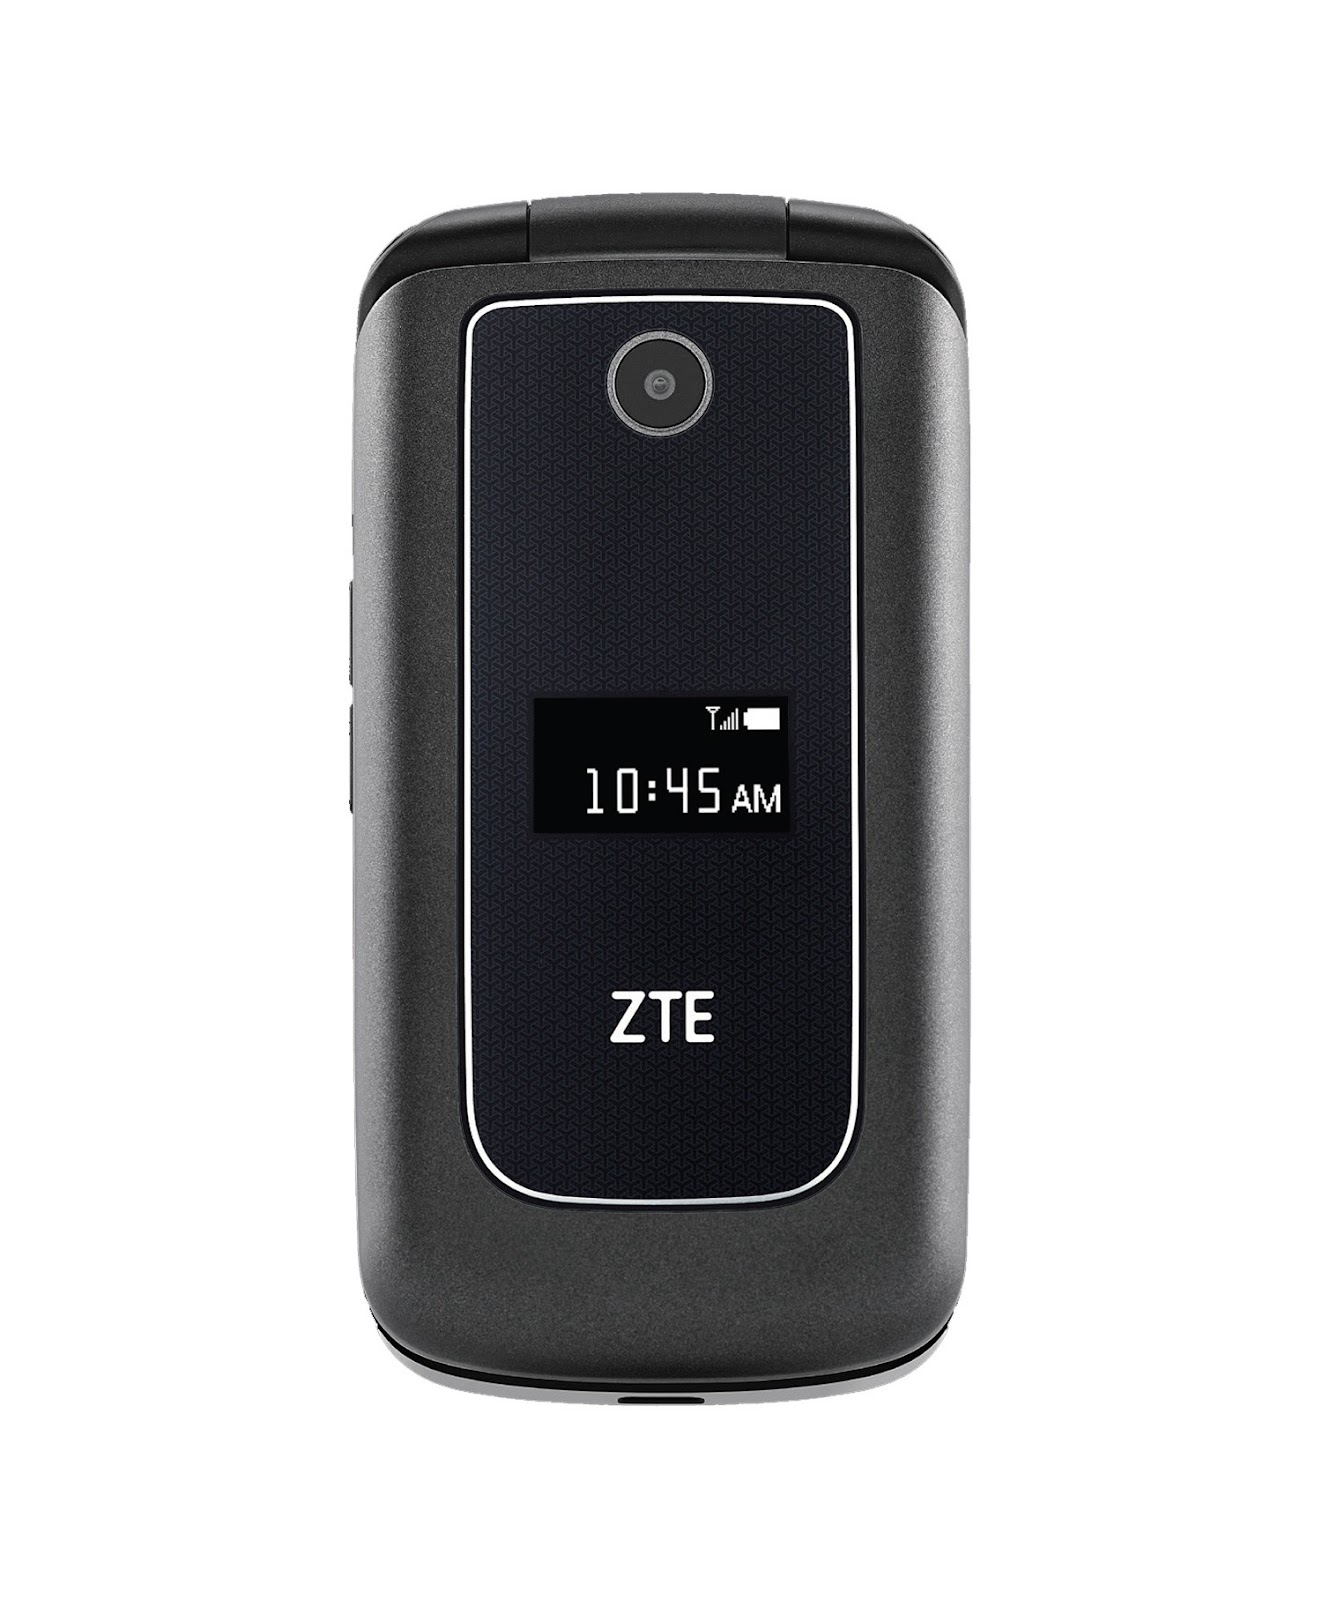 how do i get the user guide for the cymbal z320 with metro pcs and rh zte iqorsupport custhelp com zte mf920v user manual zte user guide